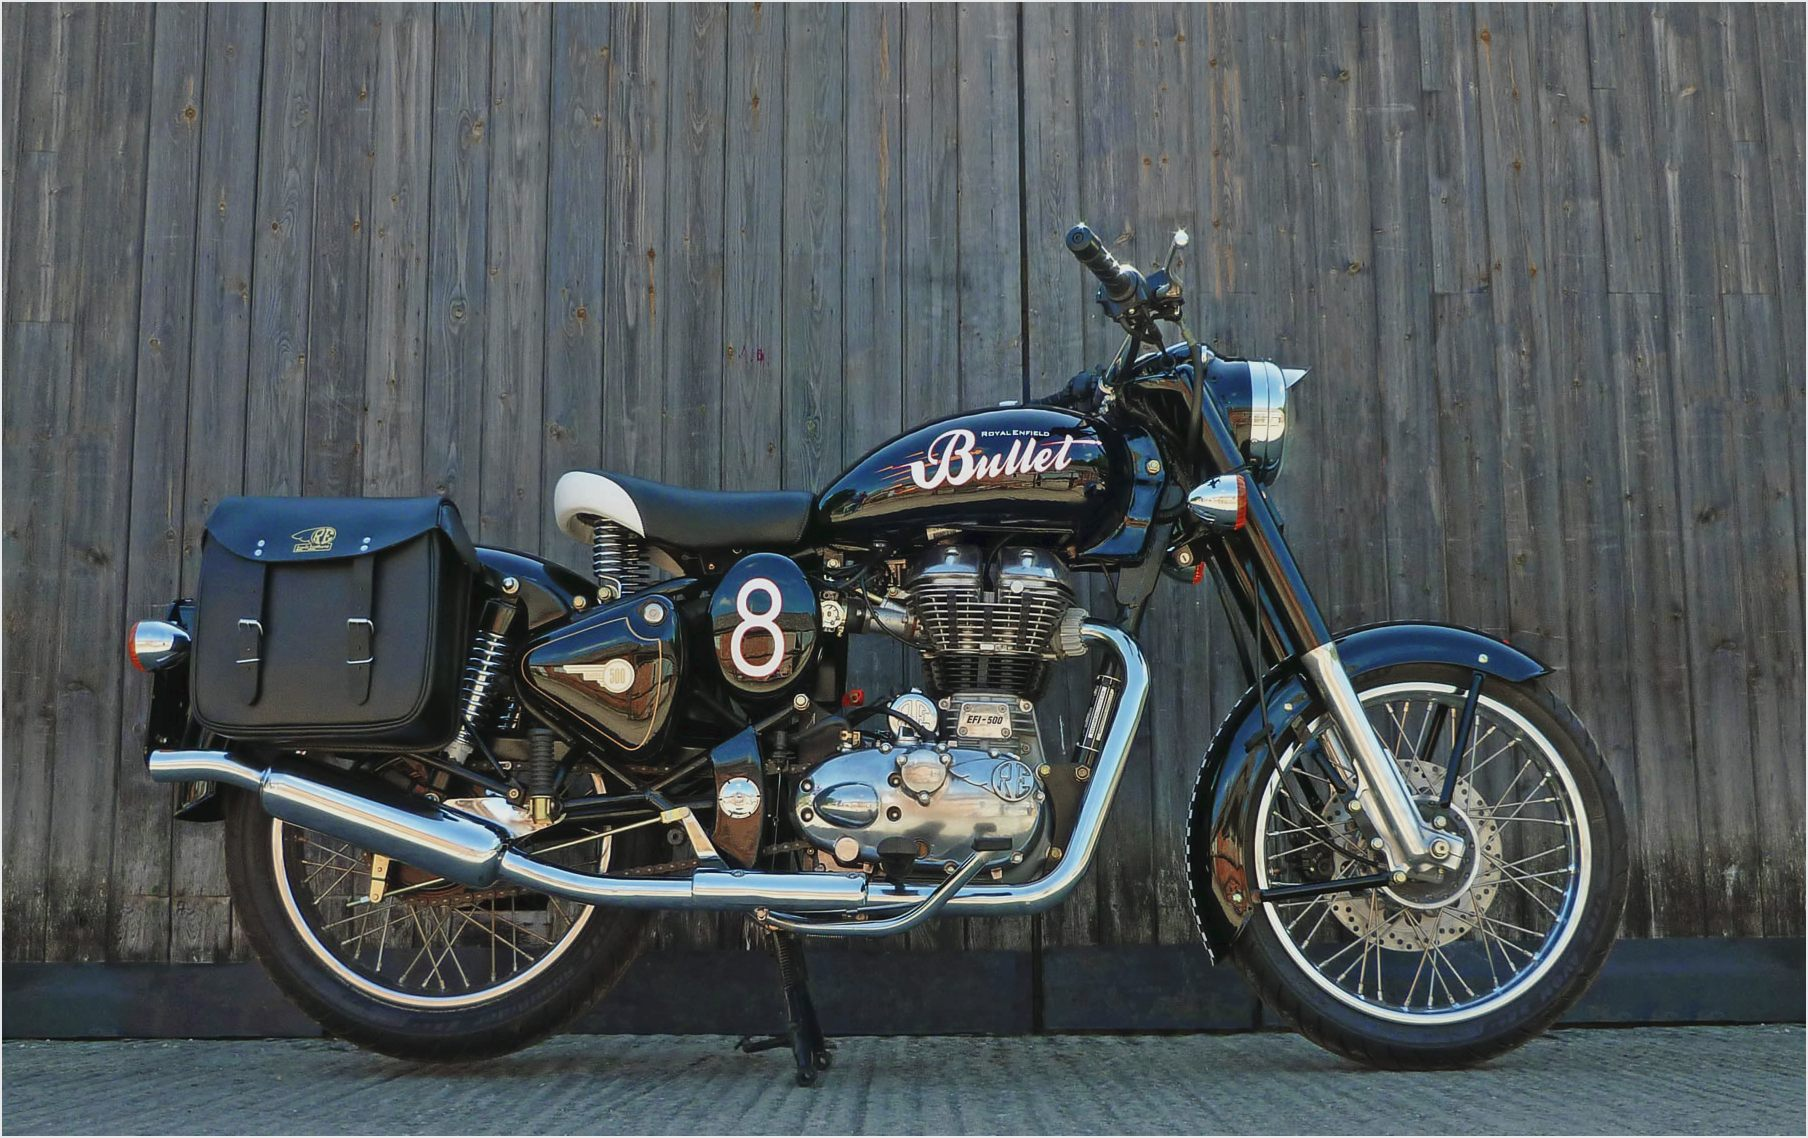 Royal Enfield Bullet 500 Trial Trail 2003 images #123199